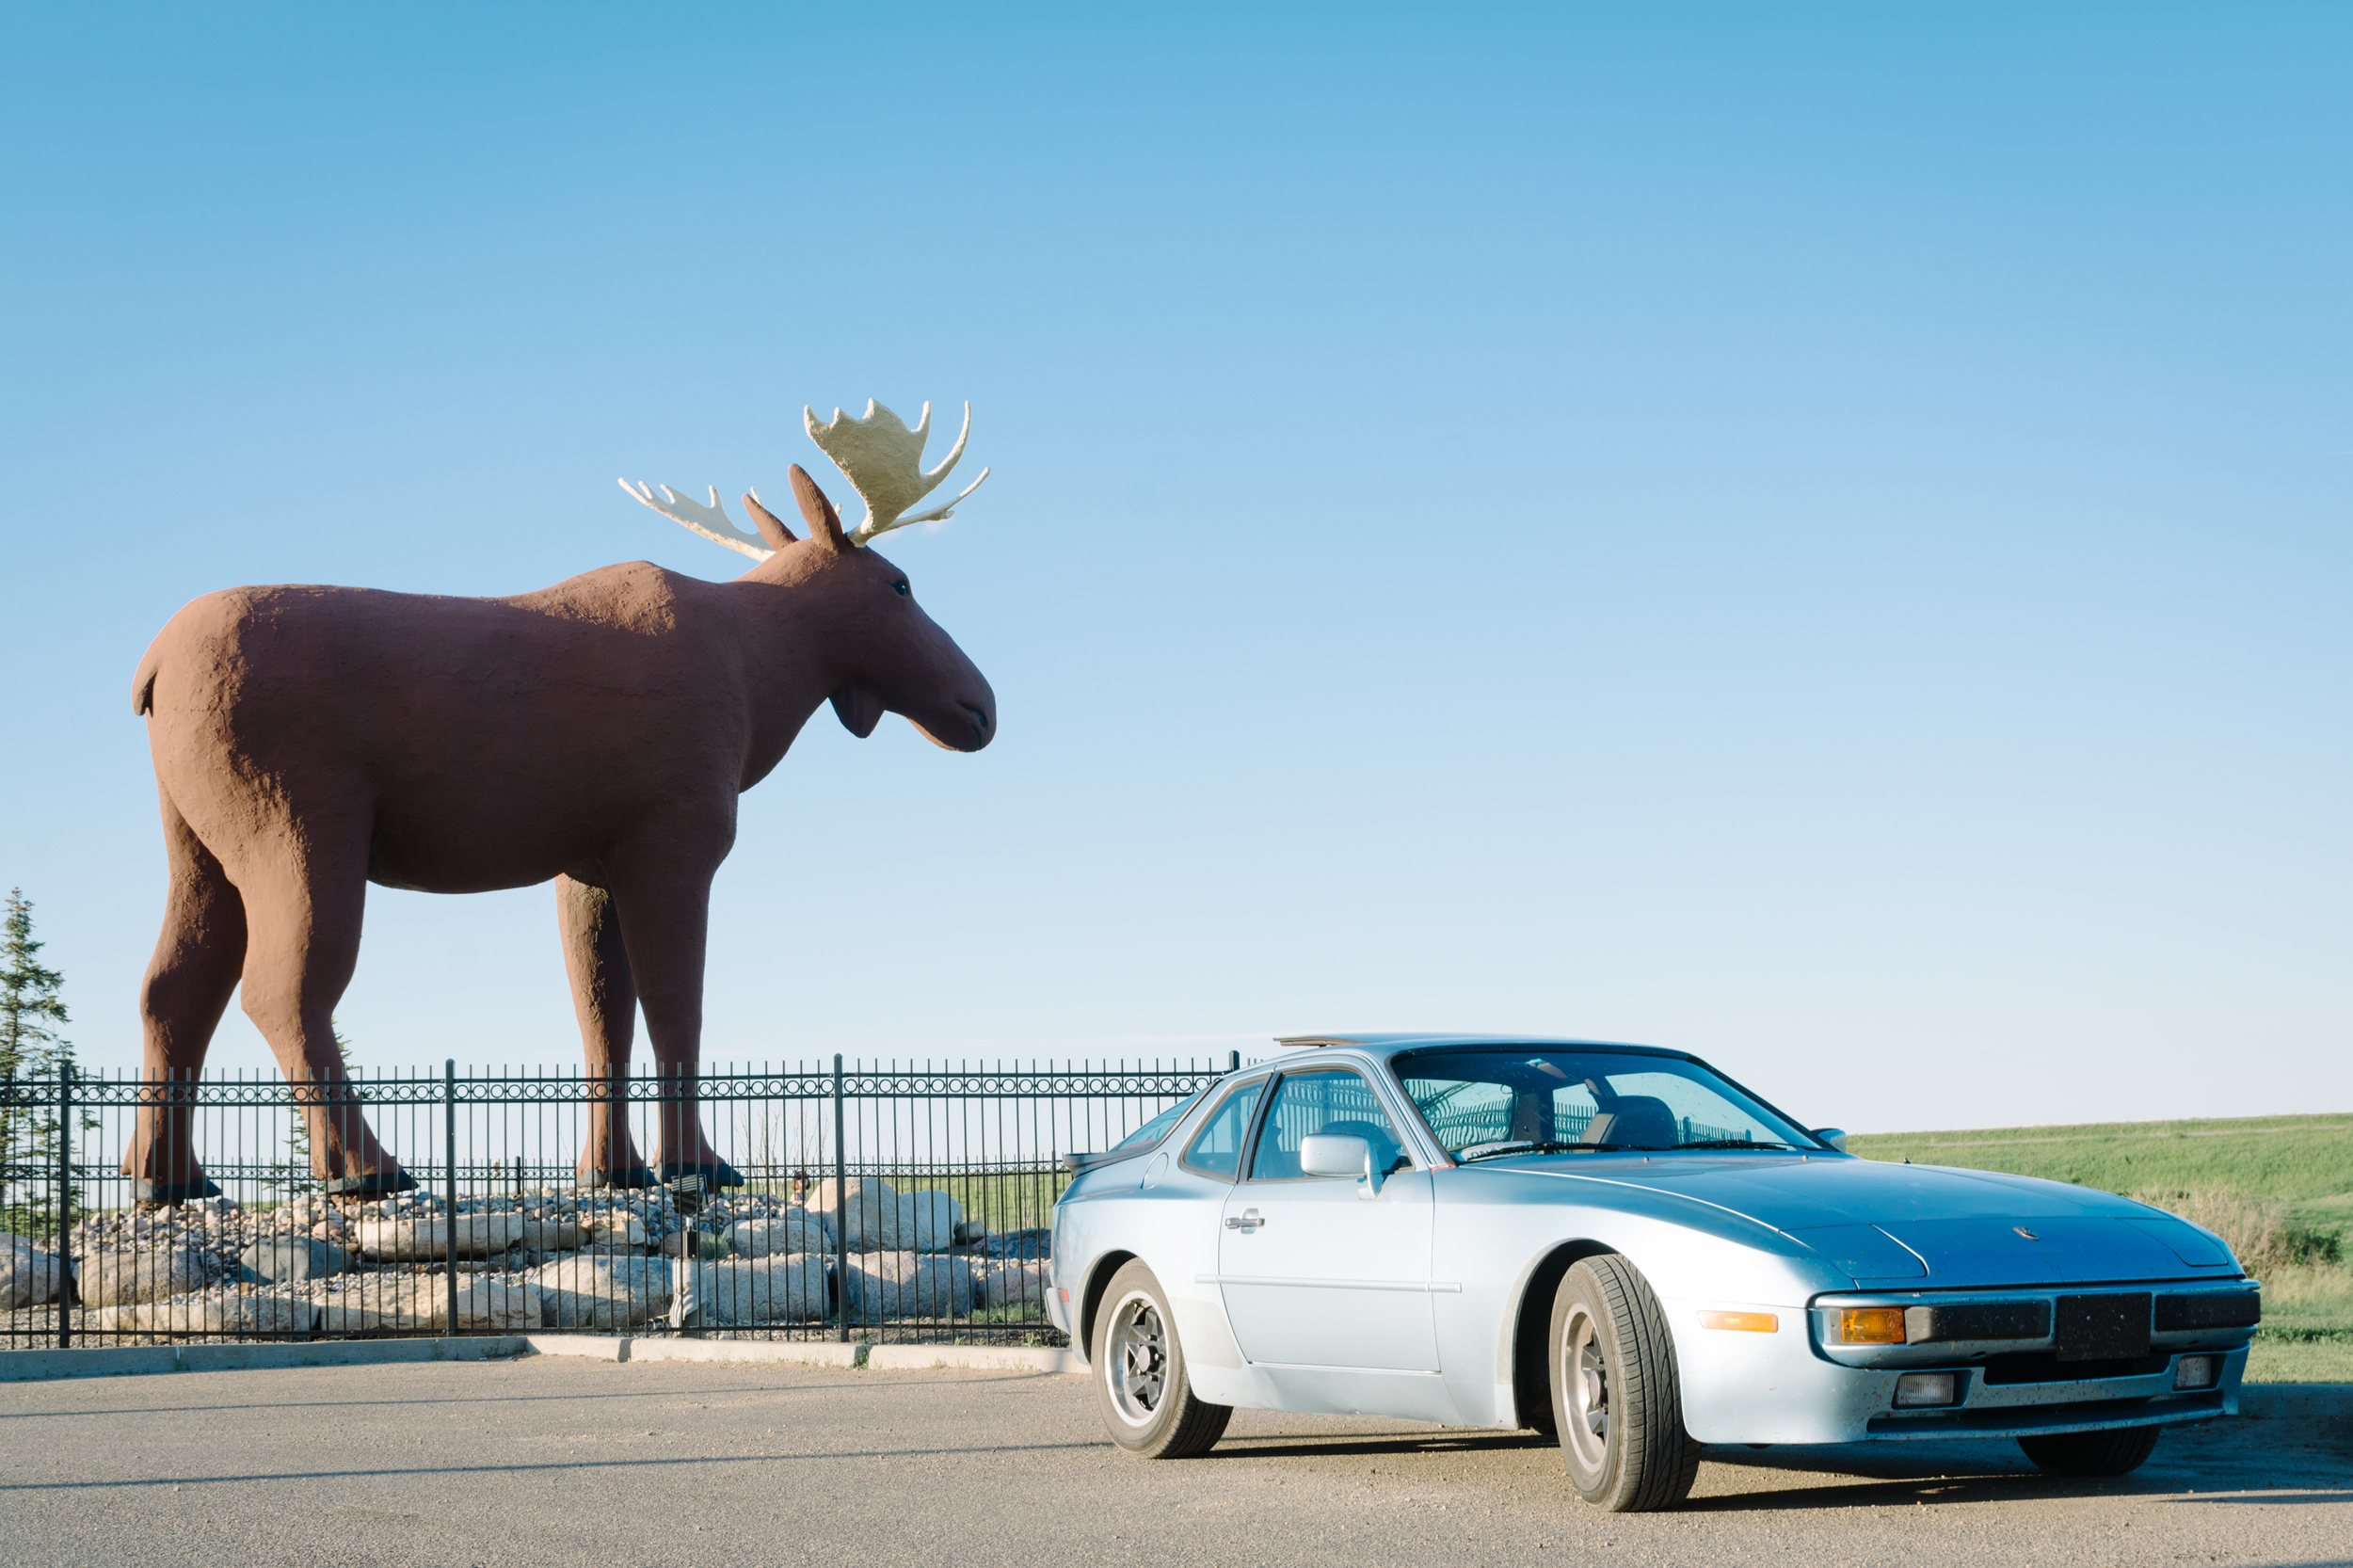 My nickname has been Elliot Moose for as long as I can remember, so we felt obliged to stop and take this photo in Moosejaw